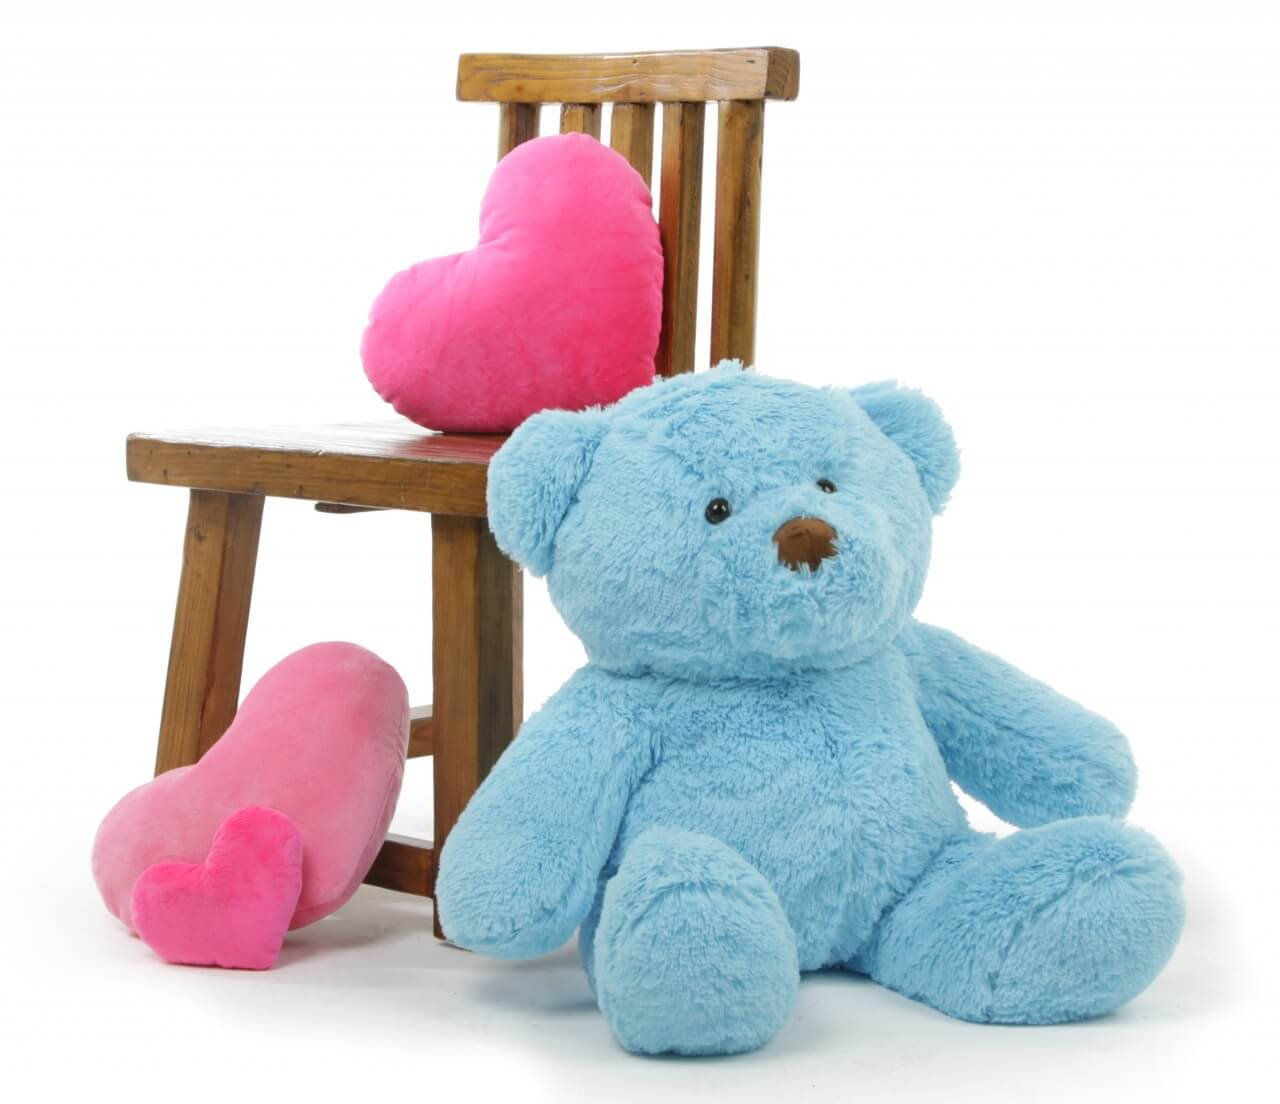 2ft Sky Blue Teddy Bear Sammy Chubs